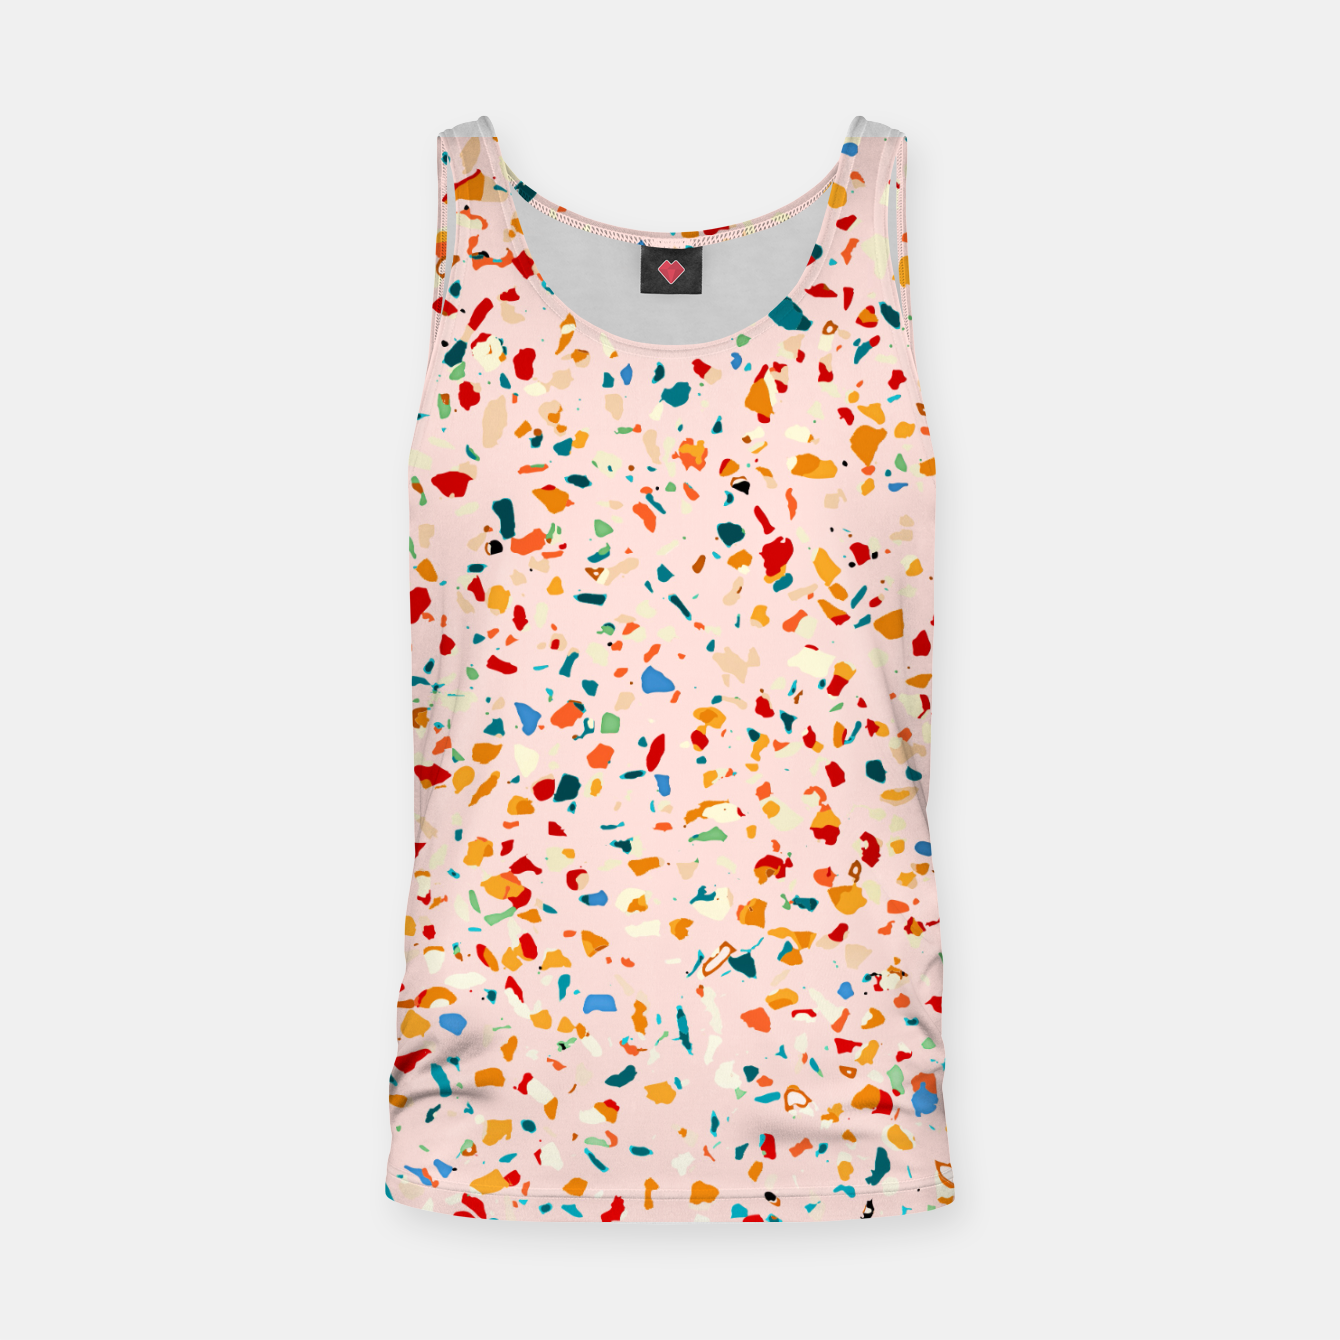 Image of Blush Terrazzo, Eclectic Colorful Abstract Geometrical Shapes Tiles, Pop of Color Graphic Design Tank Top - Live Heroes